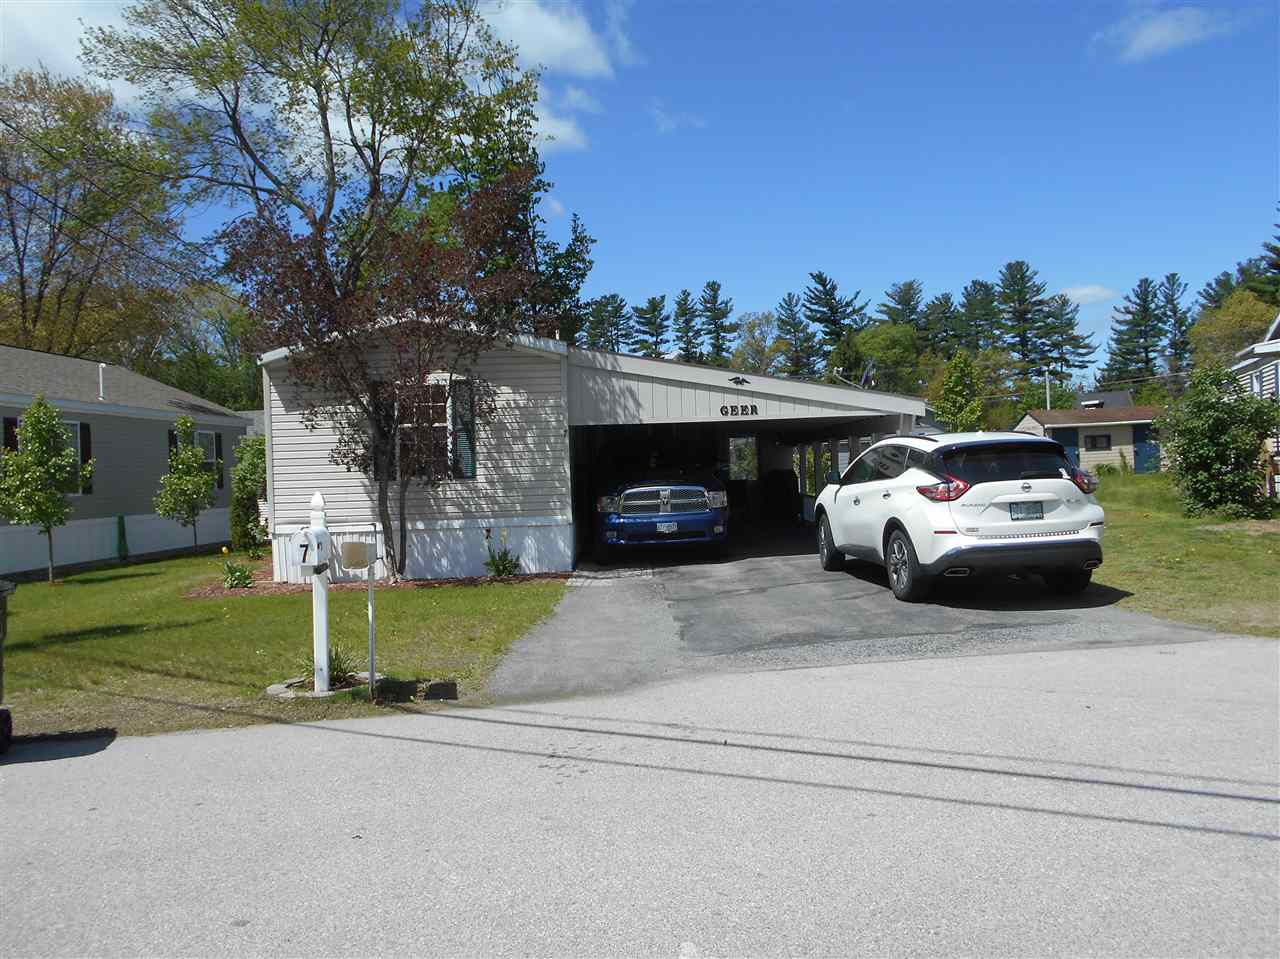 MLS 4753288: 7 Cottonwood Lane, Merrimack NH